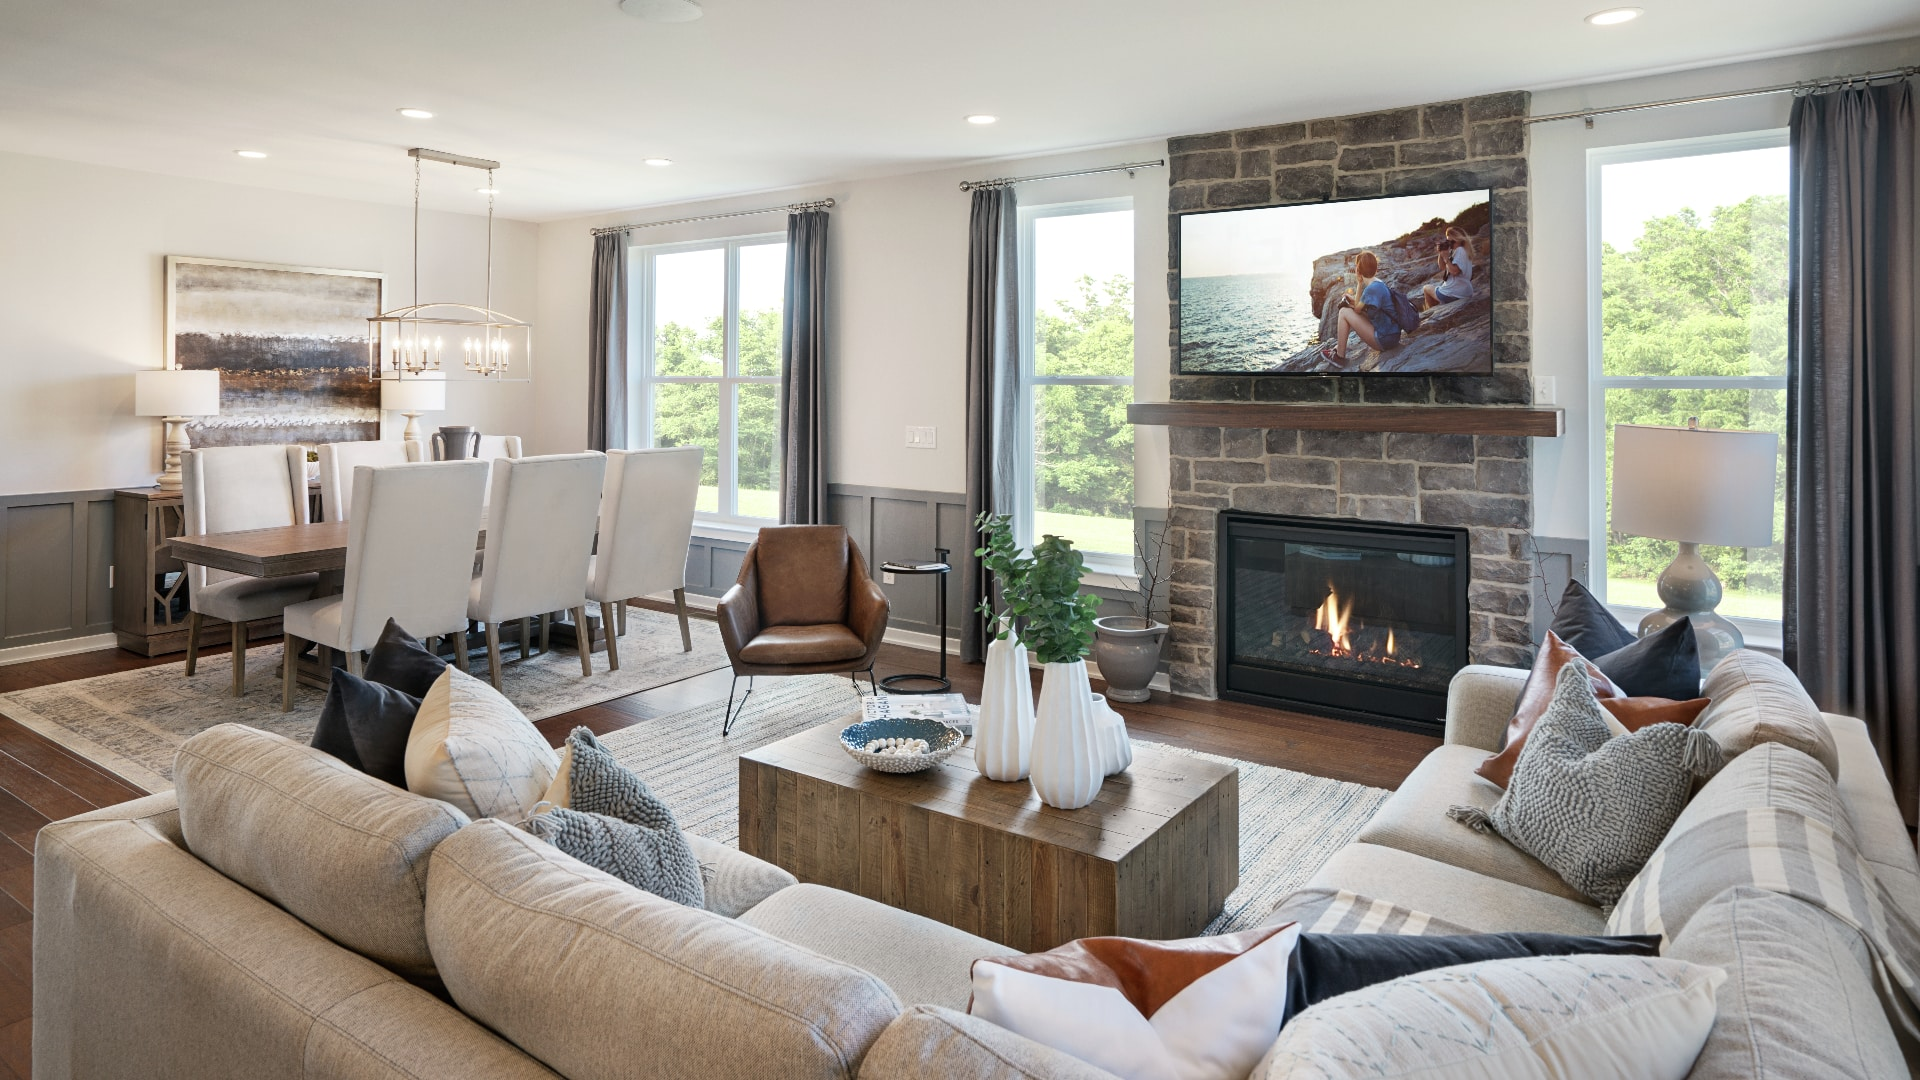 Home designs with over 2,100 square feet of living area